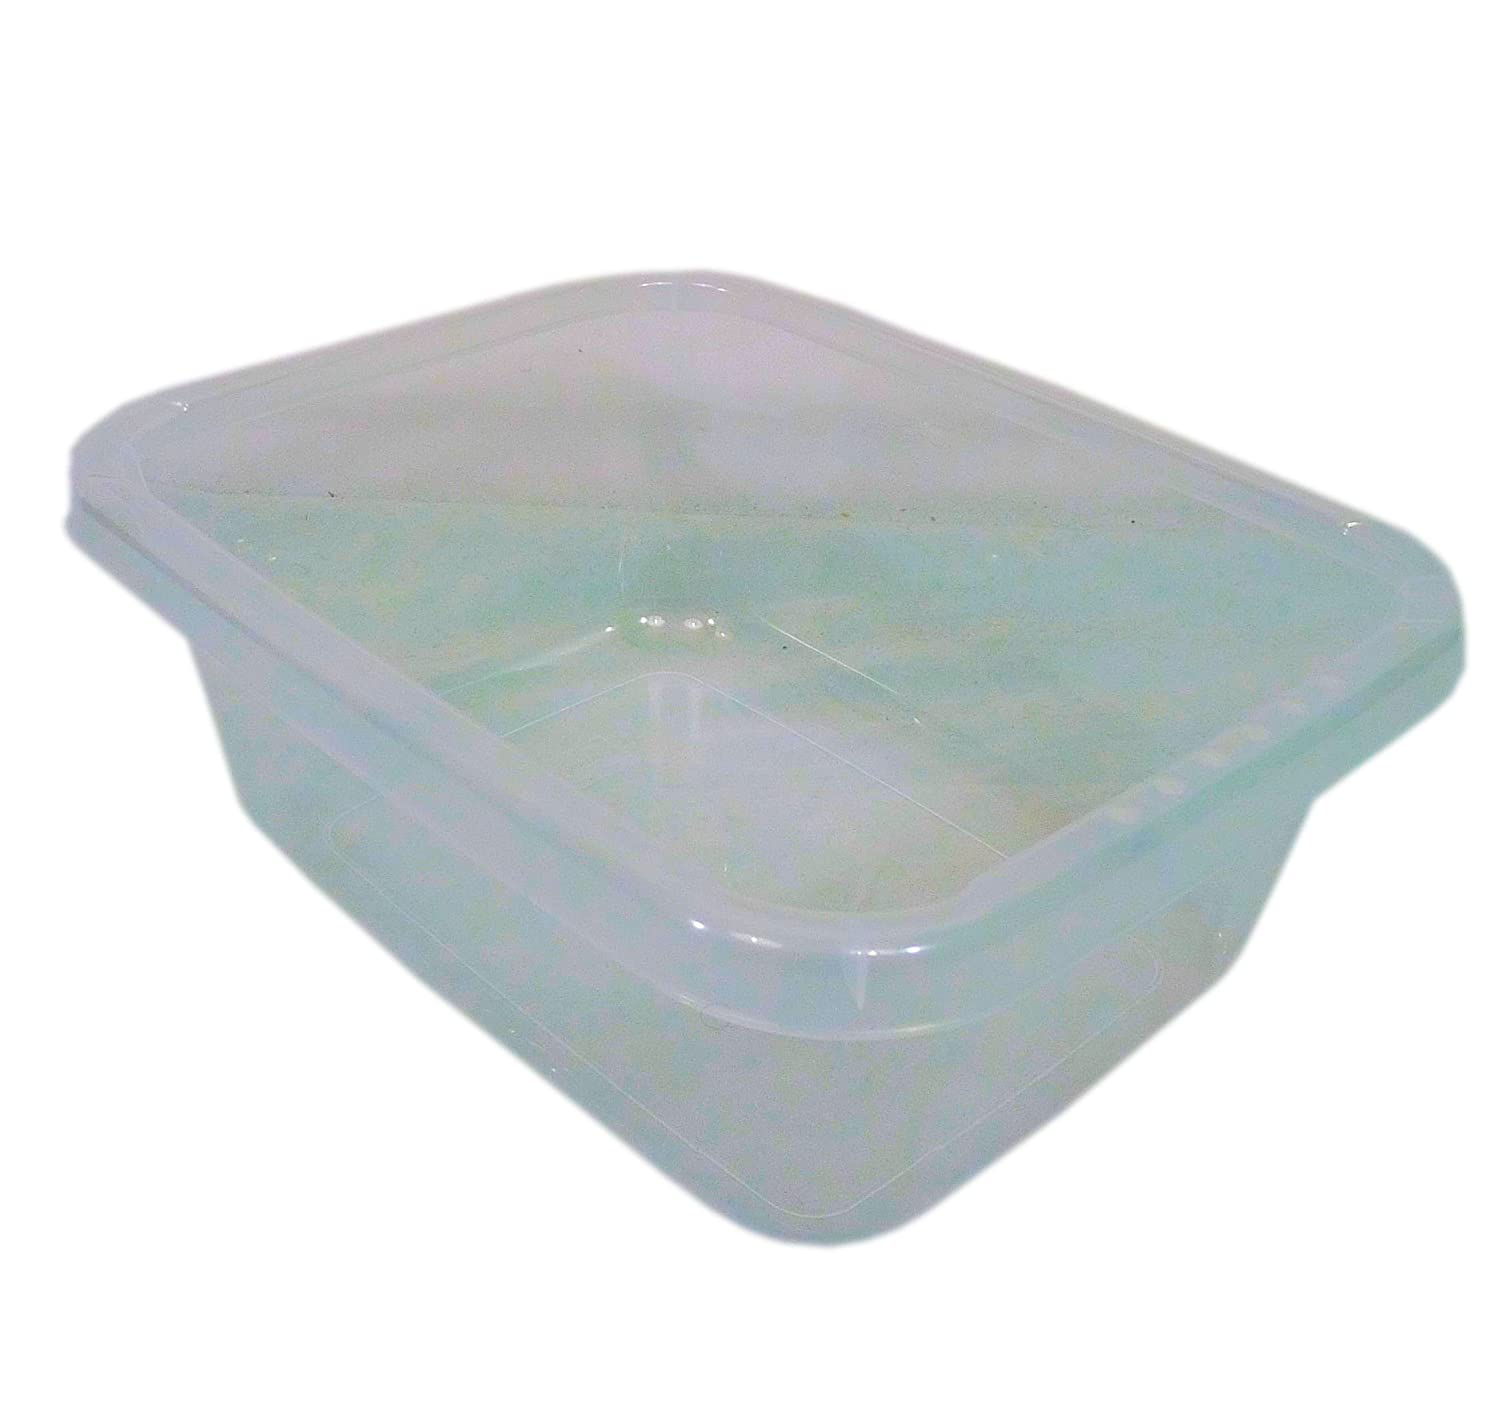 9 Litre Rectangular Clear Plastic Washing Up Bowl Basin by Hobby 31111